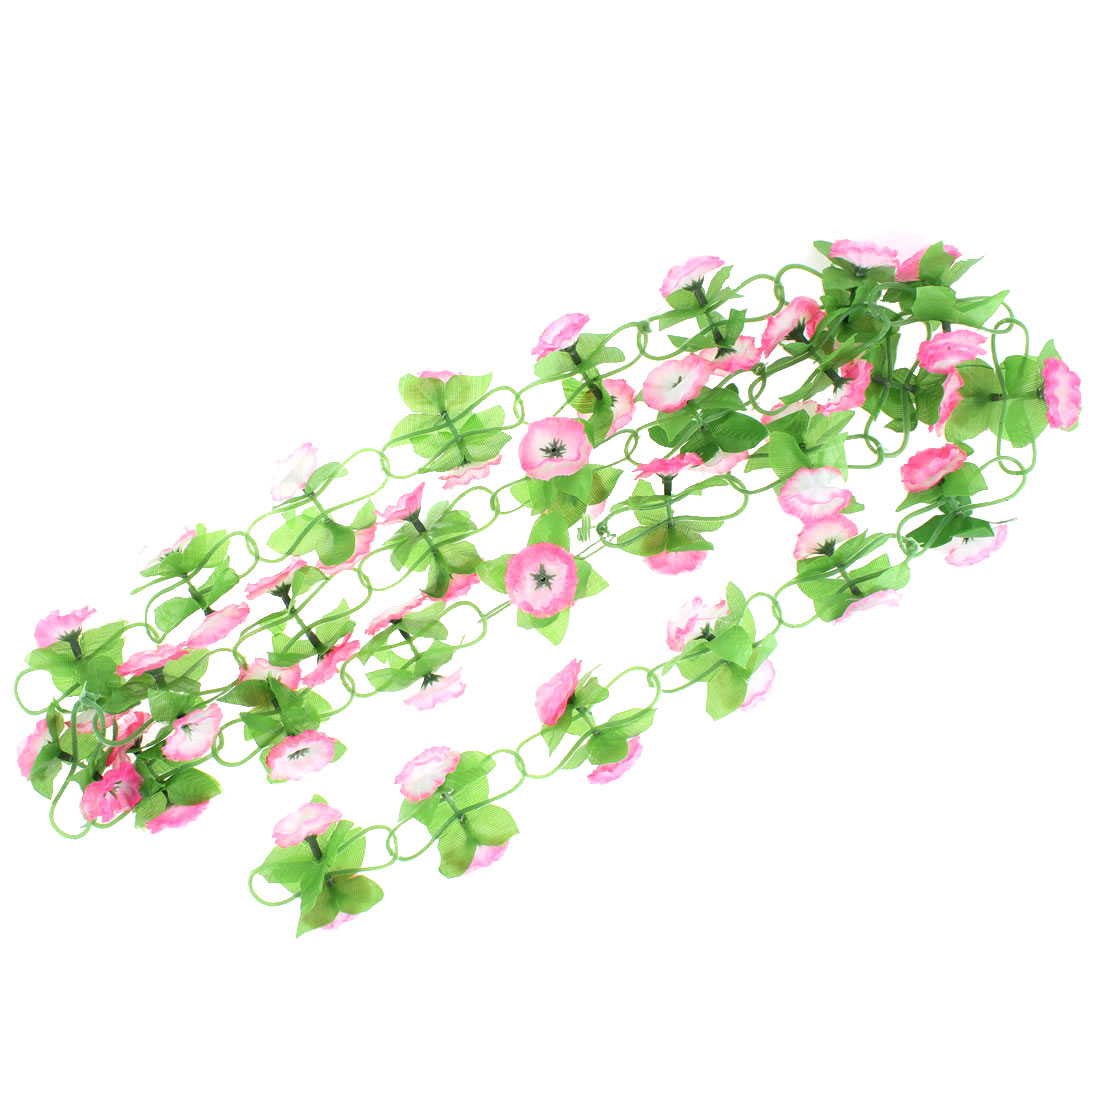 Artificial Hanging Vine Fake Flower Leaves Garland for Party Home Garden Decoration